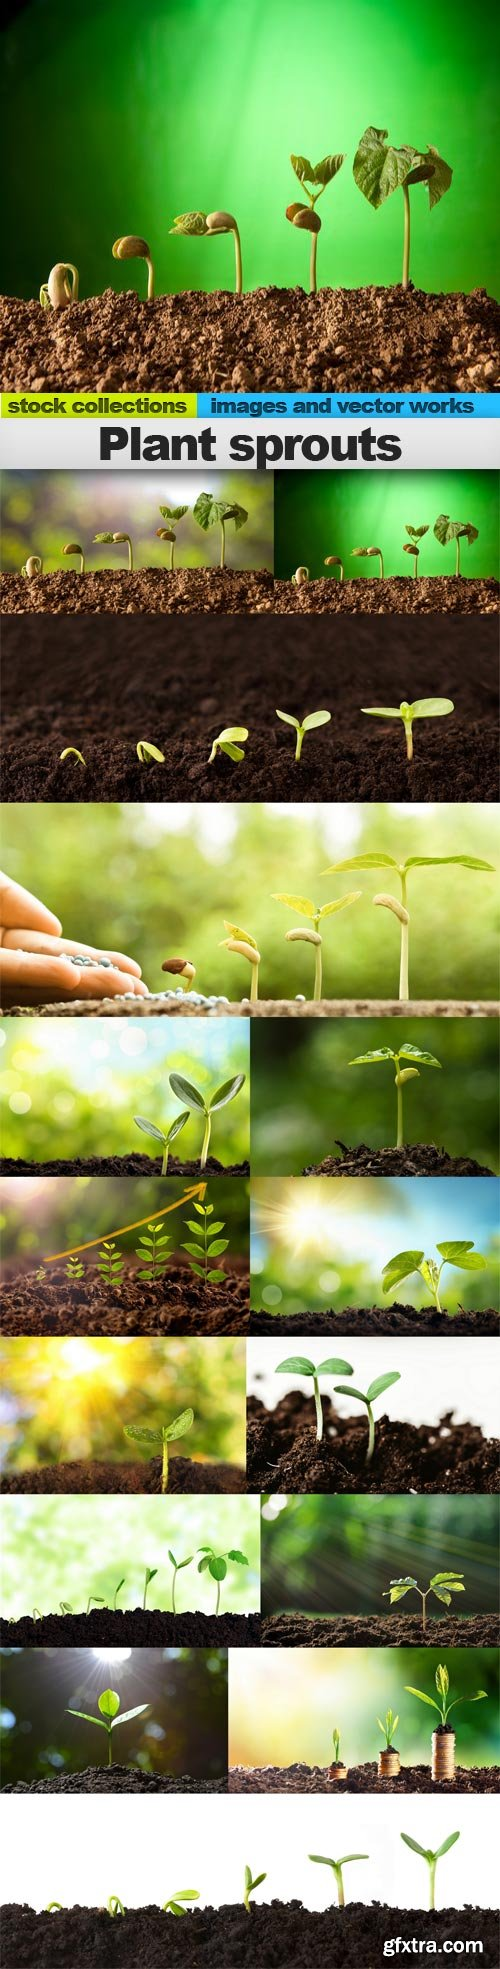 Plant sprouts, 15 x UHQ JPEG